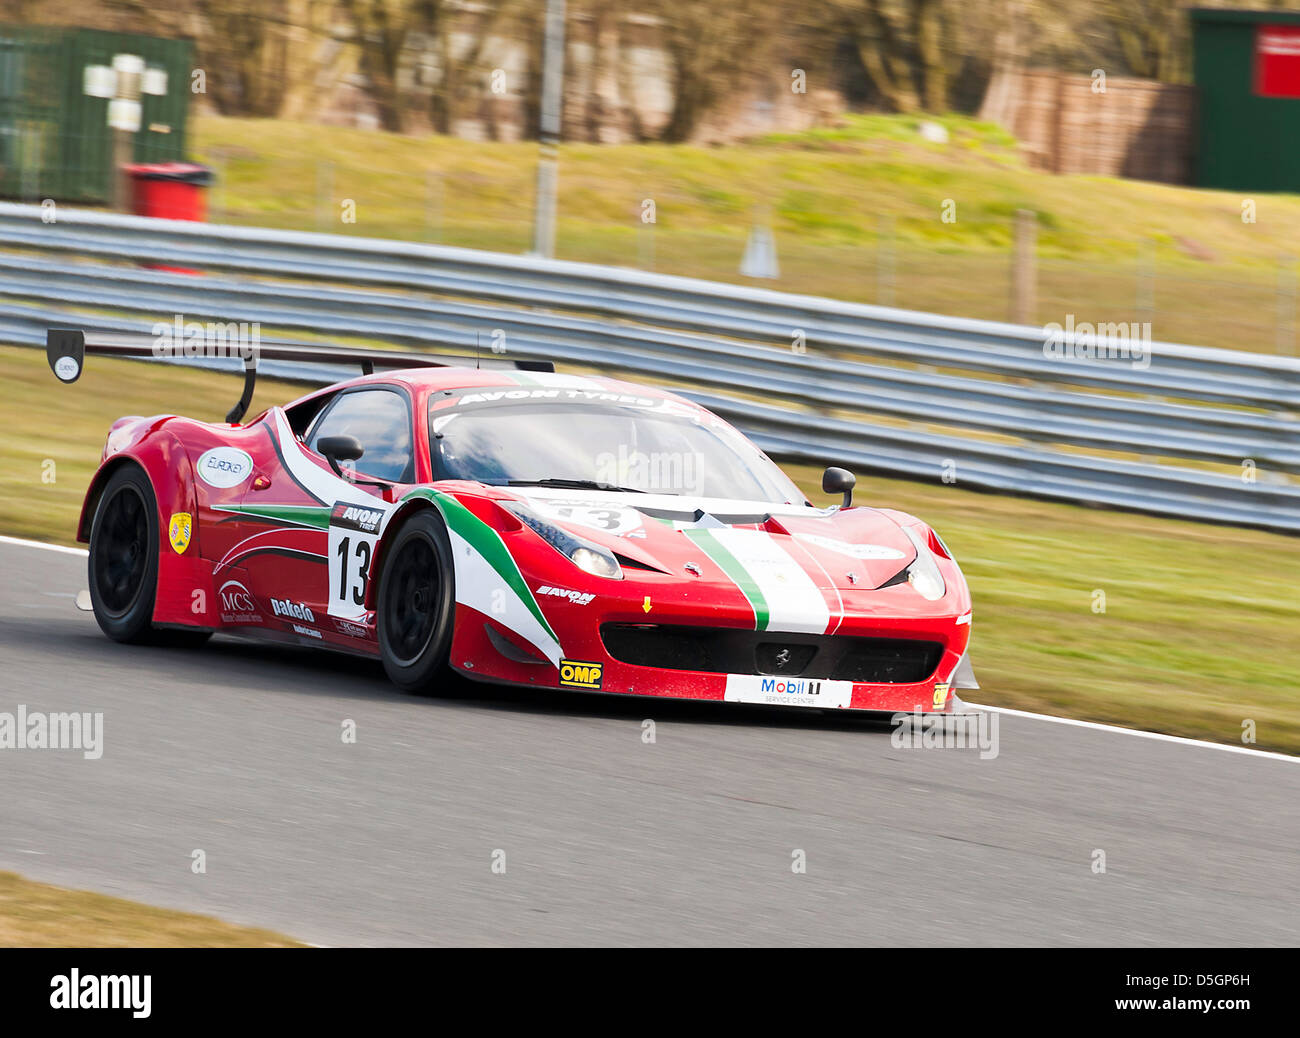 ferrari 458 italia gt3 sports car in british gt championship at stock photo royalty free image. Black Bedroom Furniture Sets. Home Design Ideas